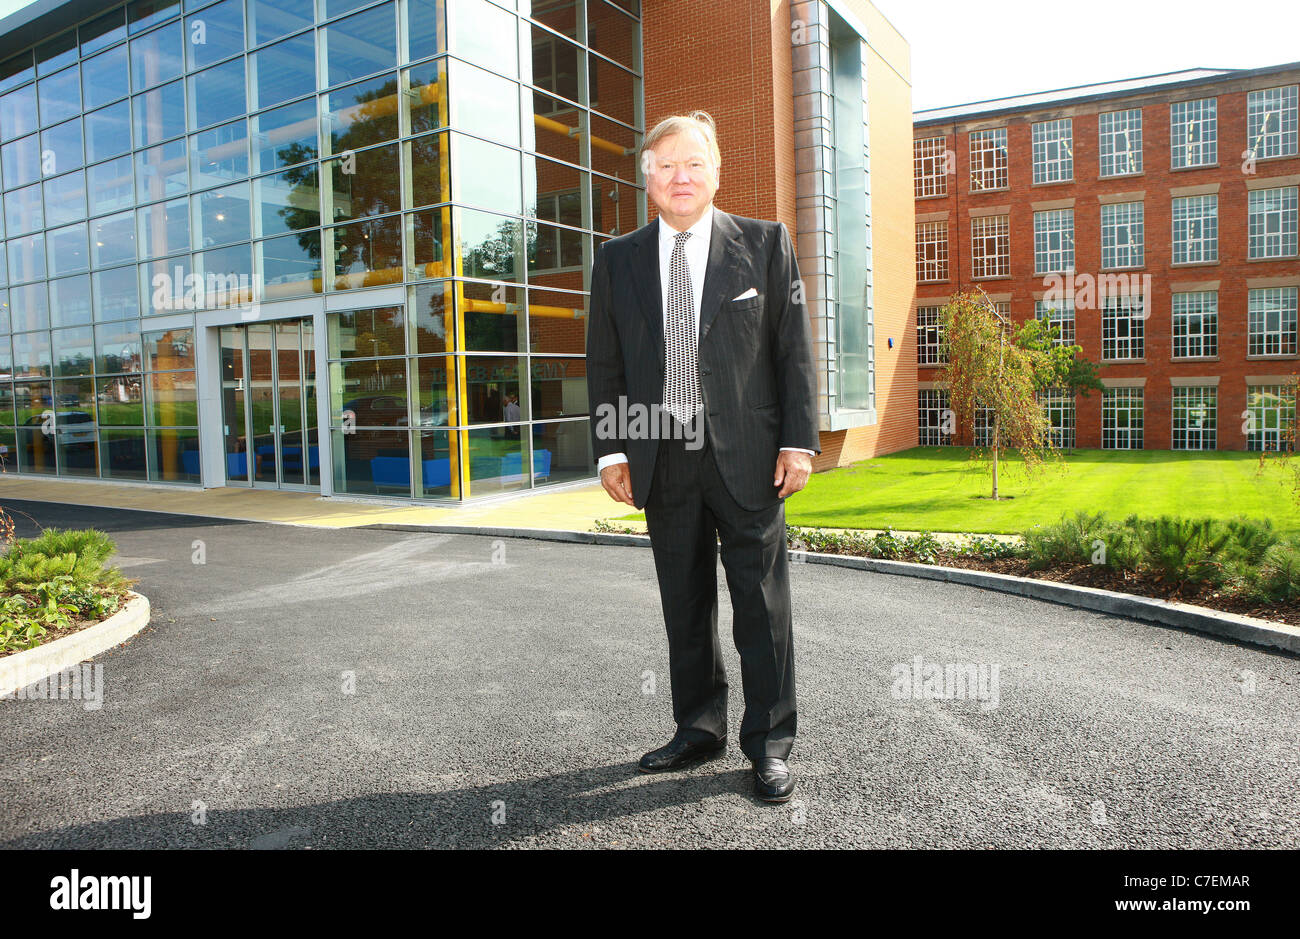 The New JCB Academy in Rocester which opened 2/9/2010. Founder and JCB Chairman Sir Anthony Bamford. Photo by Fabio - Stock Image